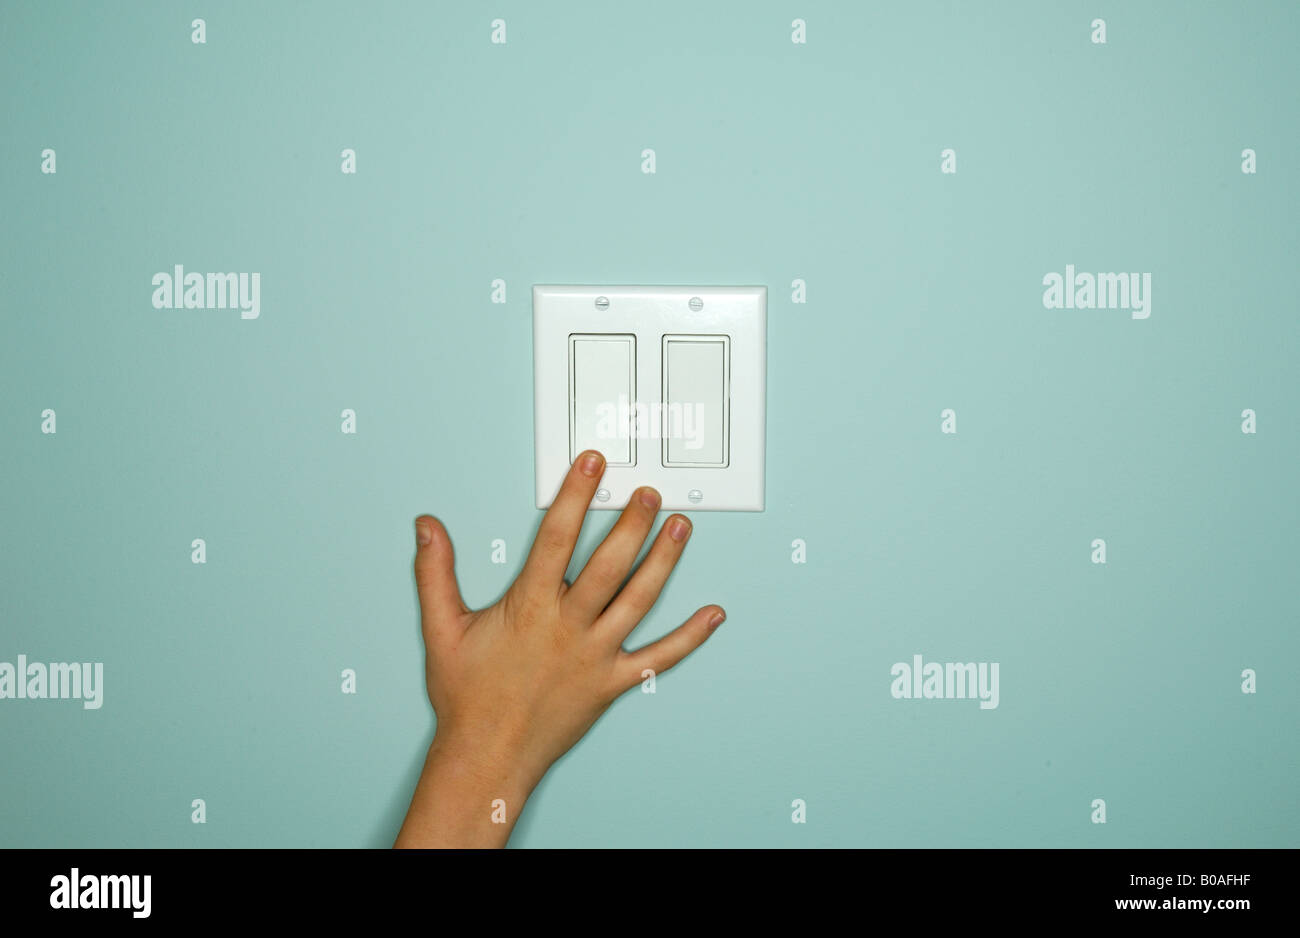 A hand touching or reaching a light switch control - Stock Image